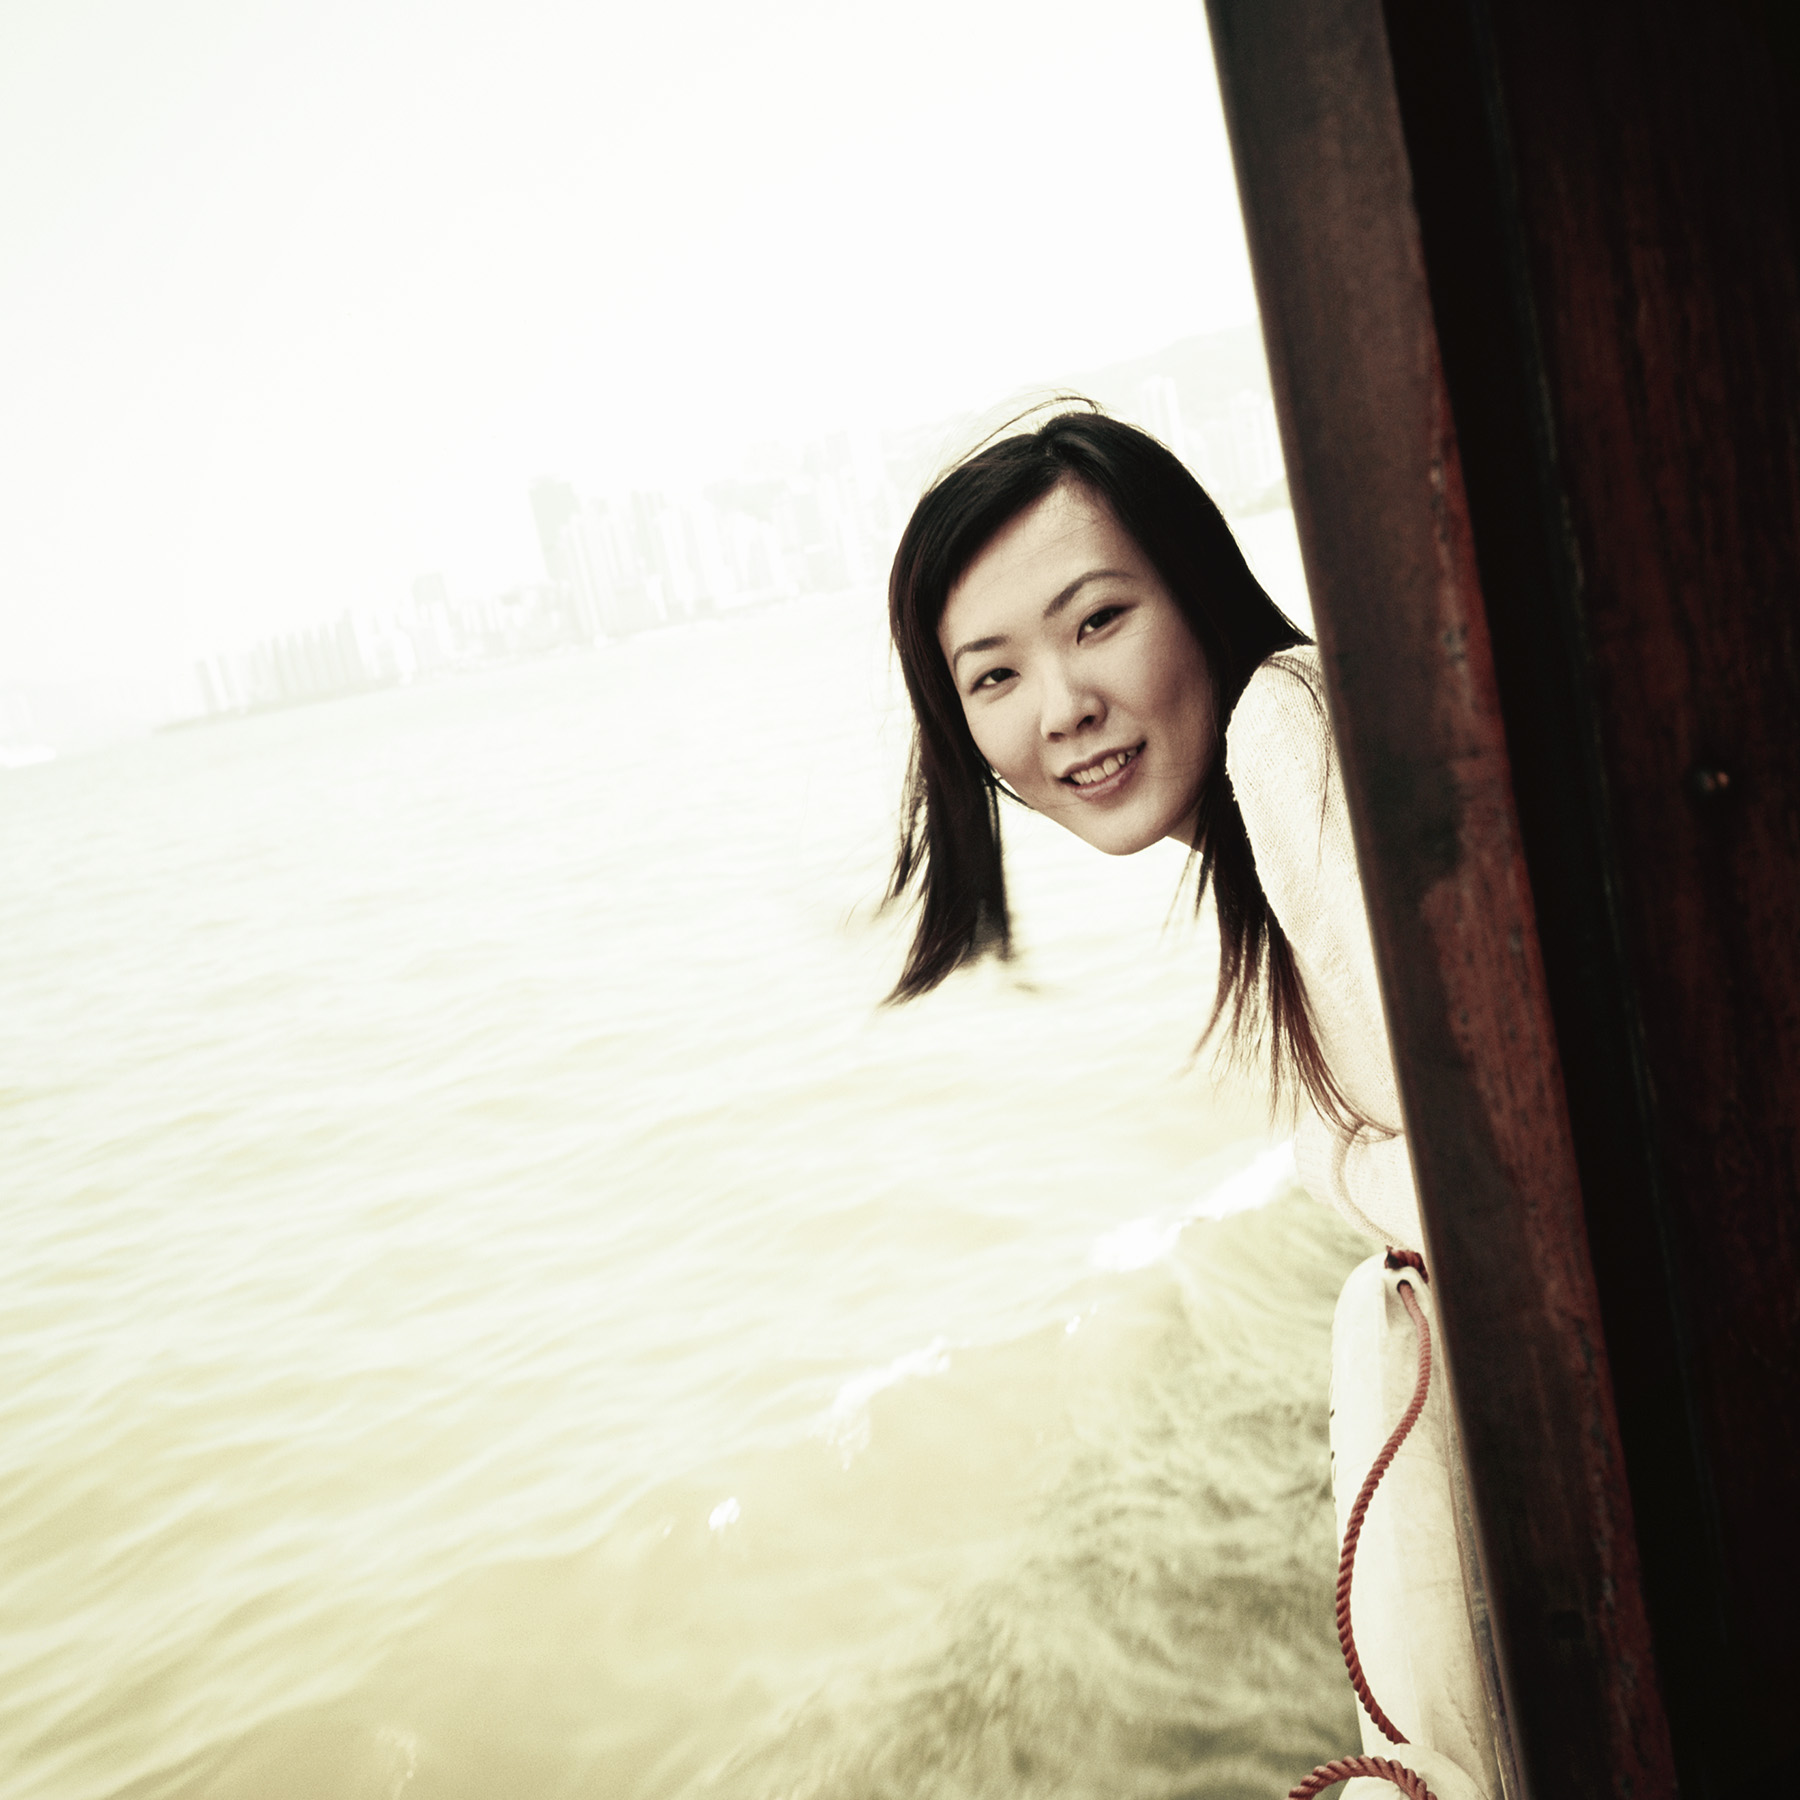 Portrait of young woman on Hong Kong Ferry